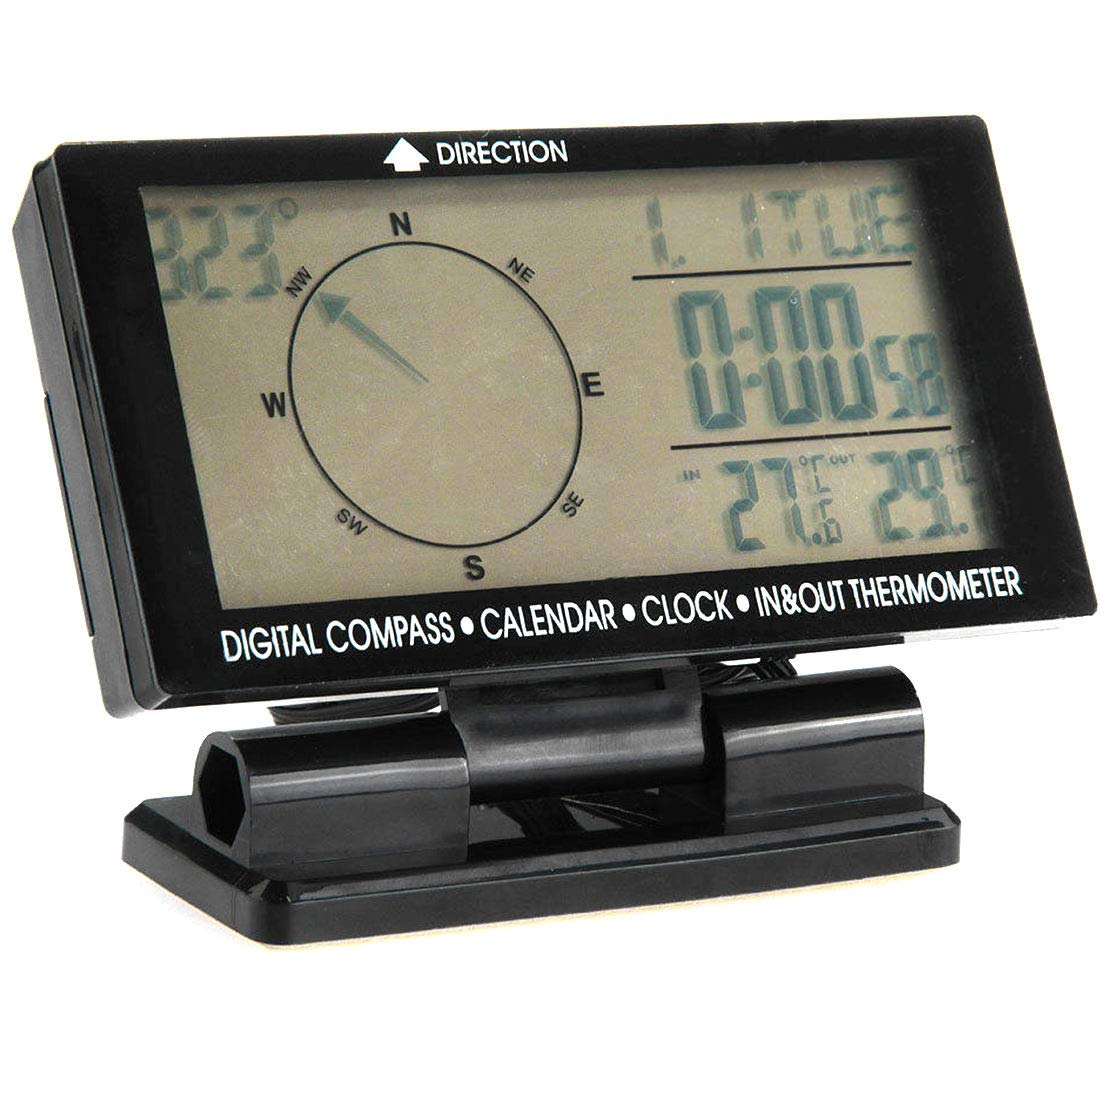 Car LCD Display Screen Blue LED in-Car Digital Compass Clock Thermometer Meter Calendar with Accessories